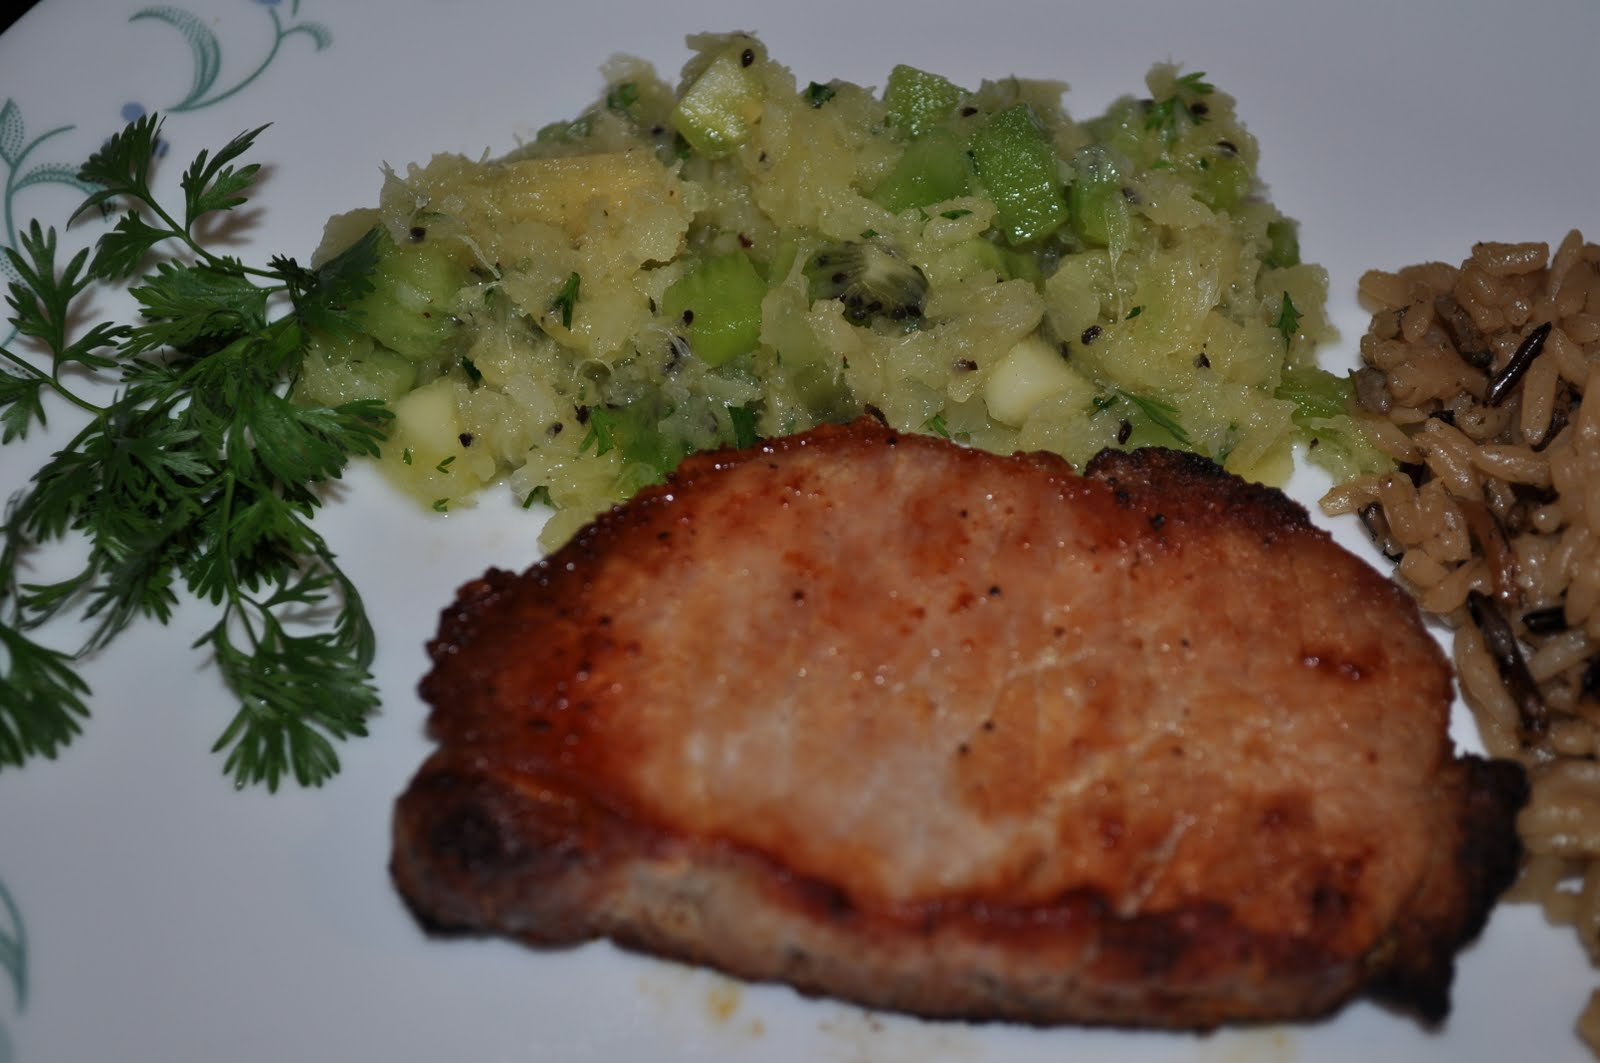 My Year of 25: Recipe #38 - Pork Chops with Tropical Salsa